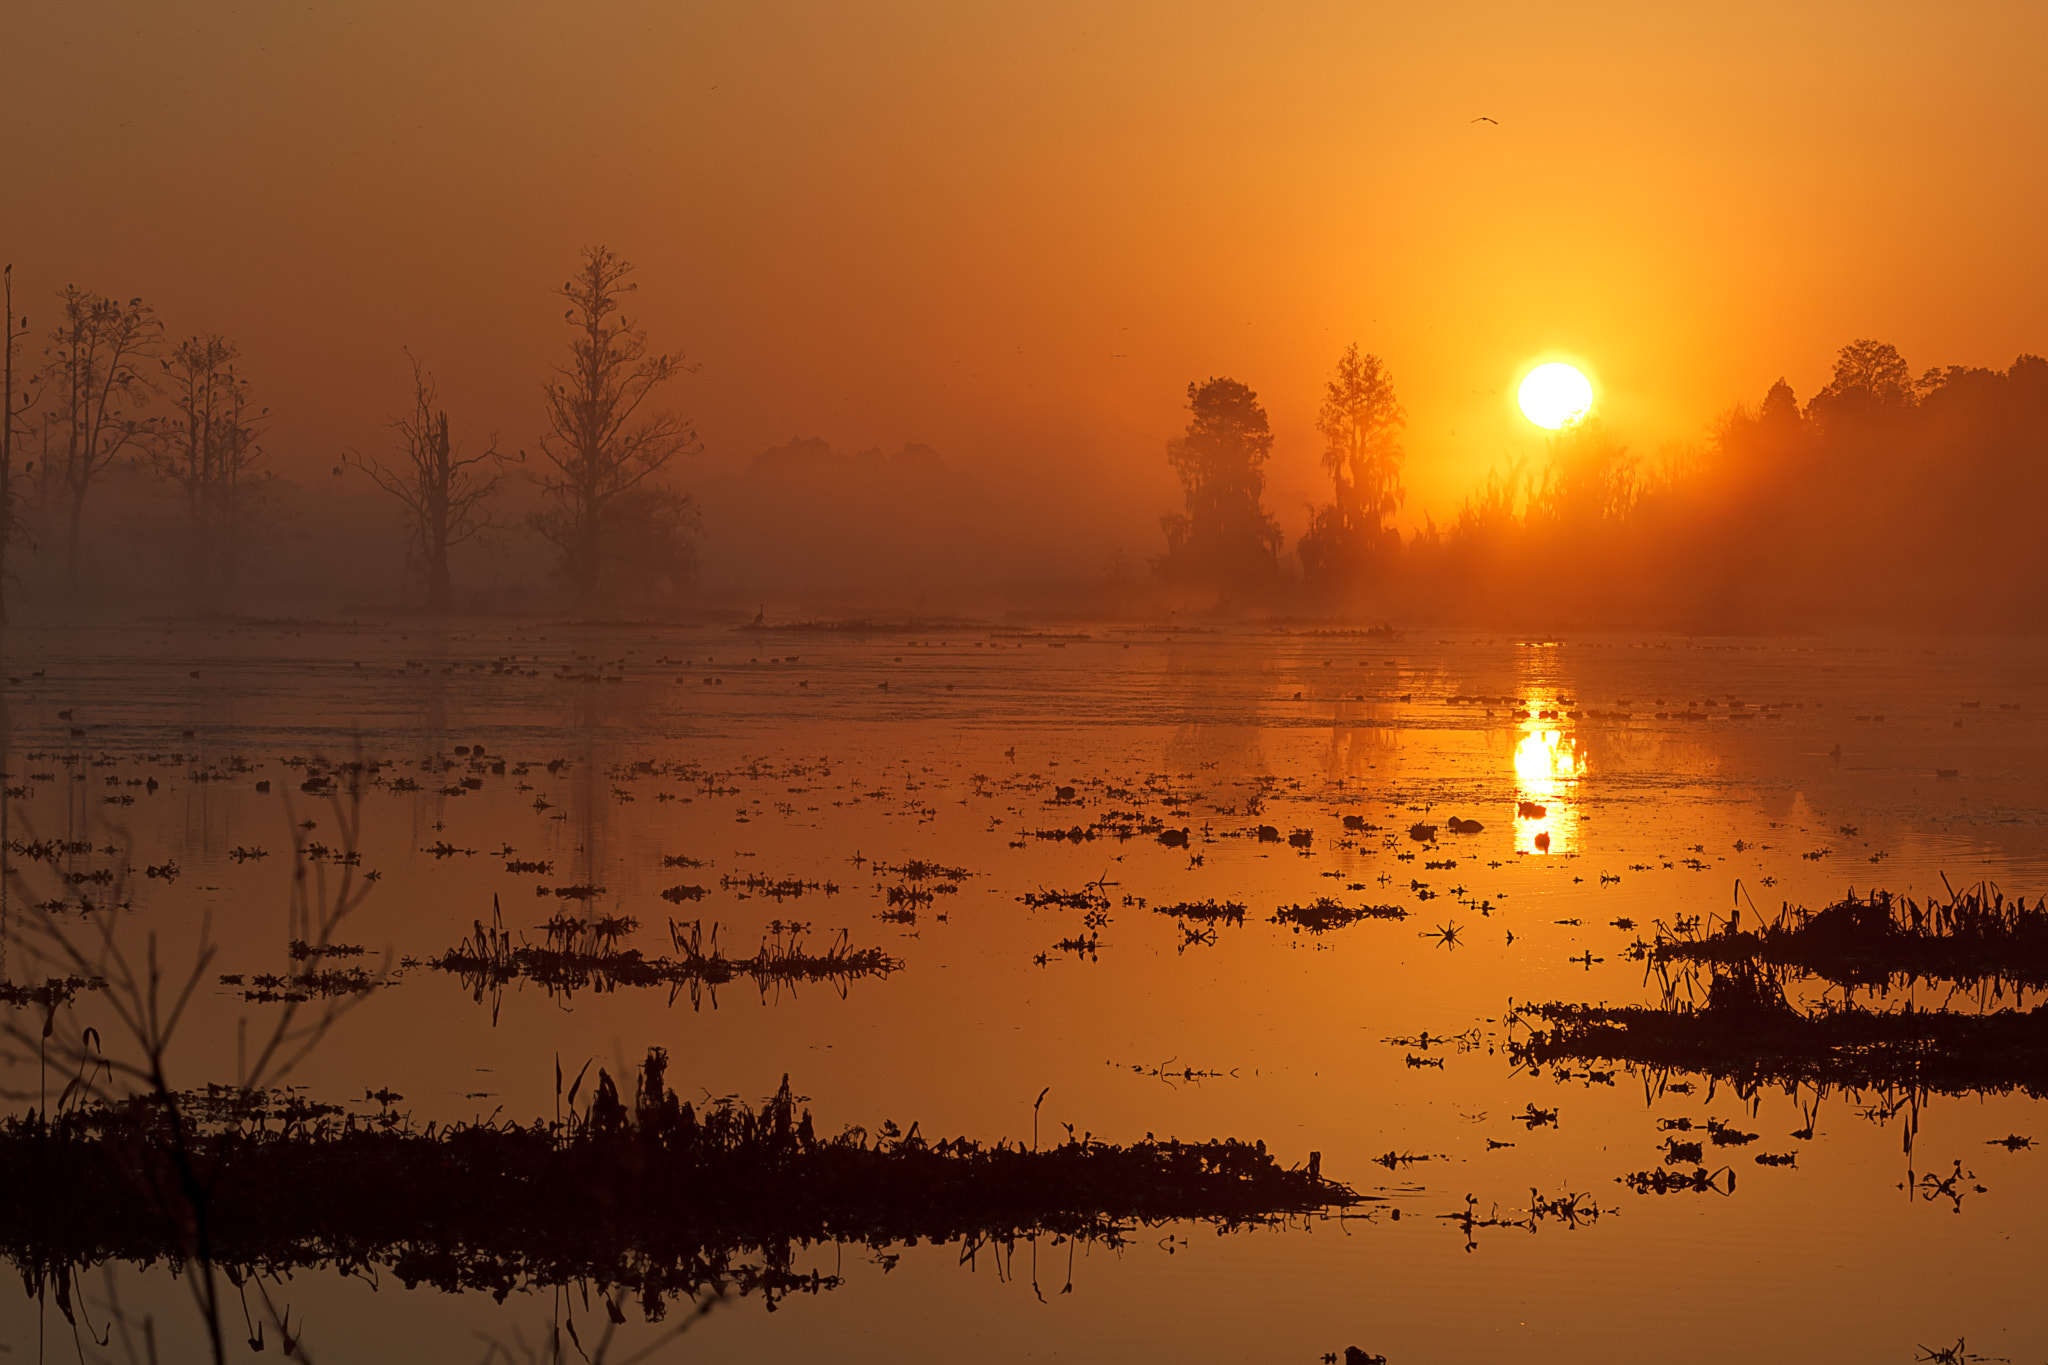 Photograph Misty Morning Marsh by Daniel Kaufman on 500px